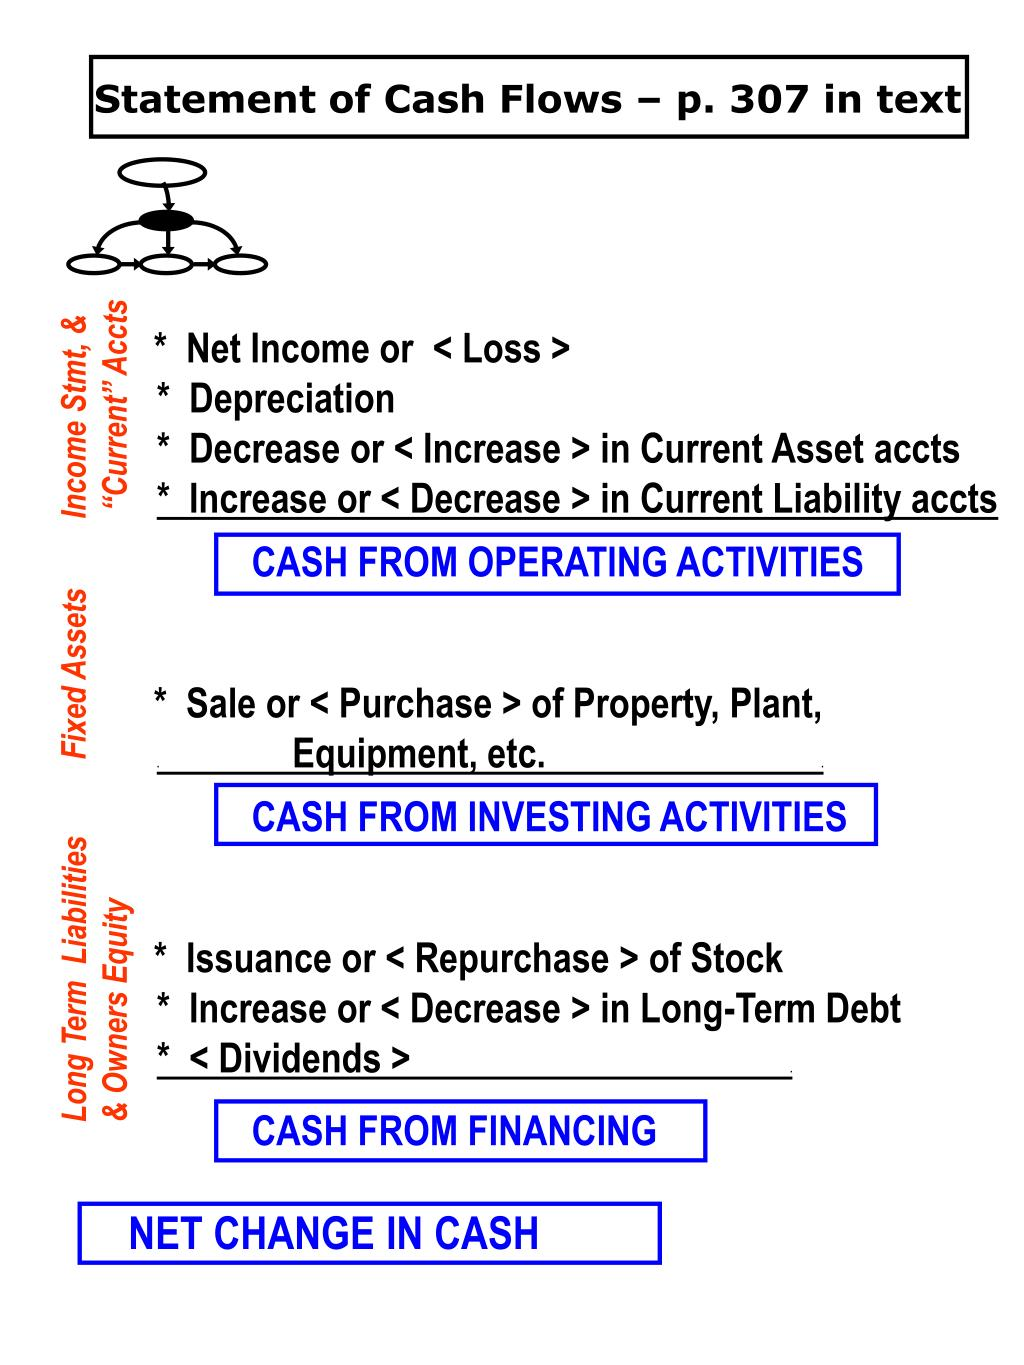 Statement of Cash Flows – p. 307 in text